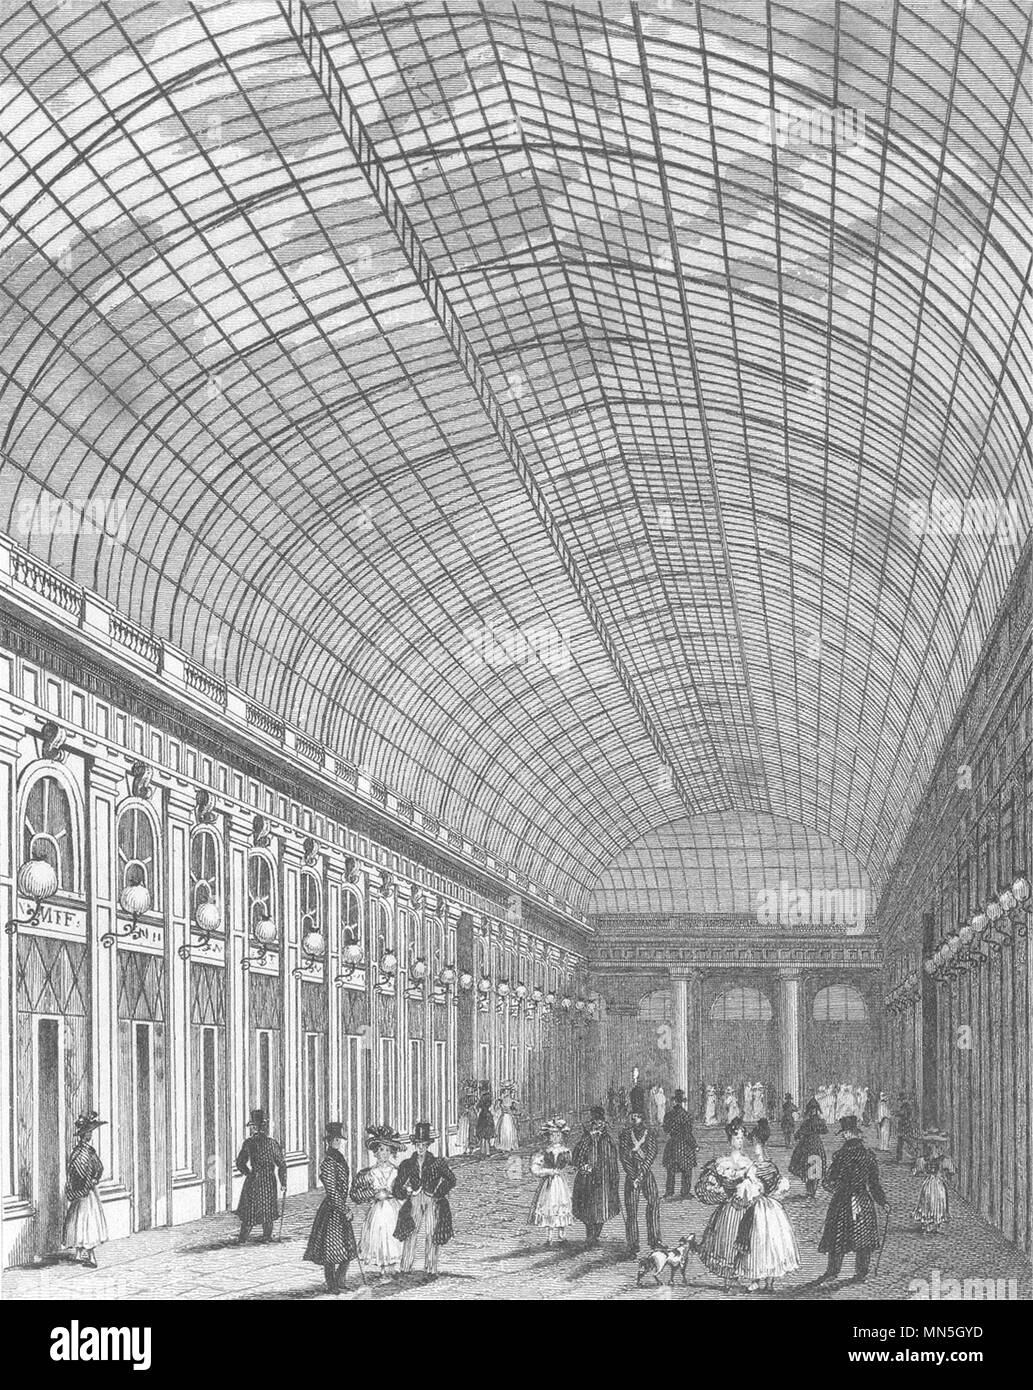 PARIS. Interieur de la Galerie du Palais Royal 1831 alte antike Bild drucken Stockbild